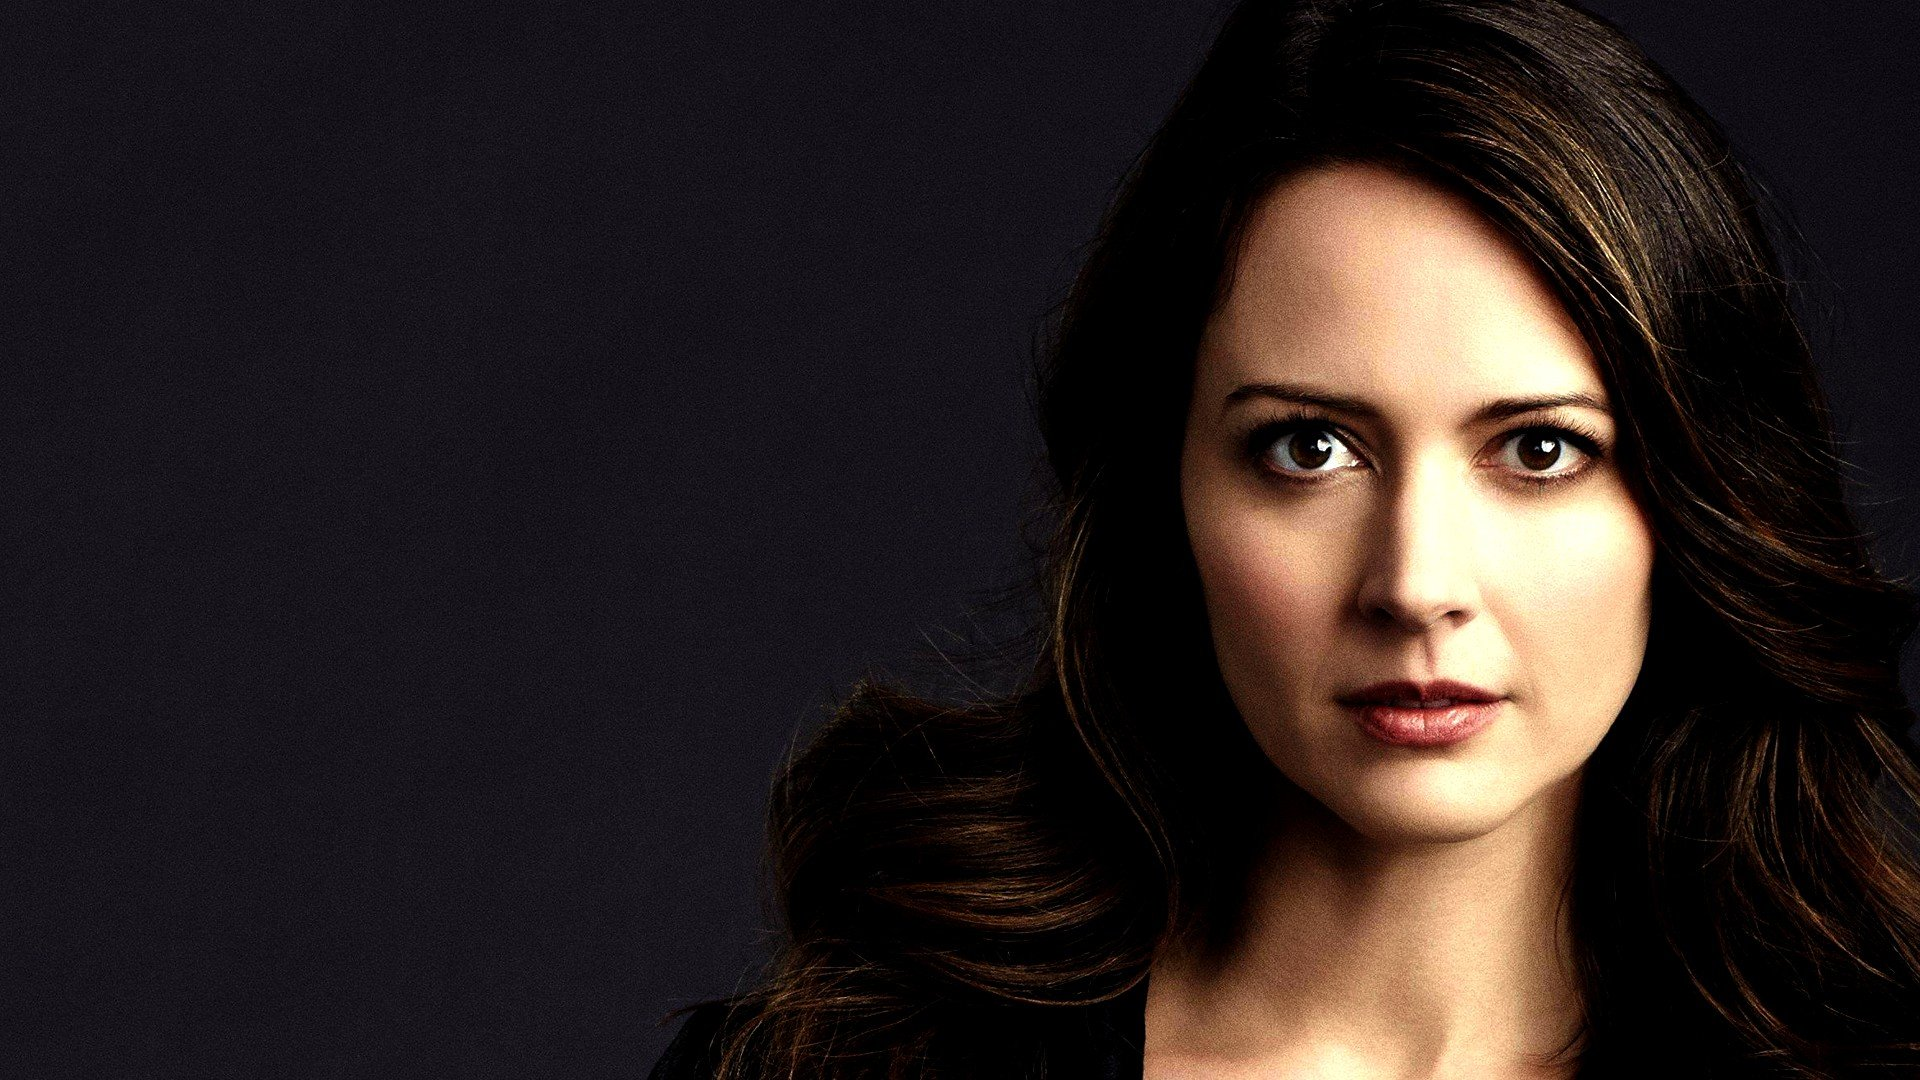 amy acker, root (character), person of interest hd wallpapers